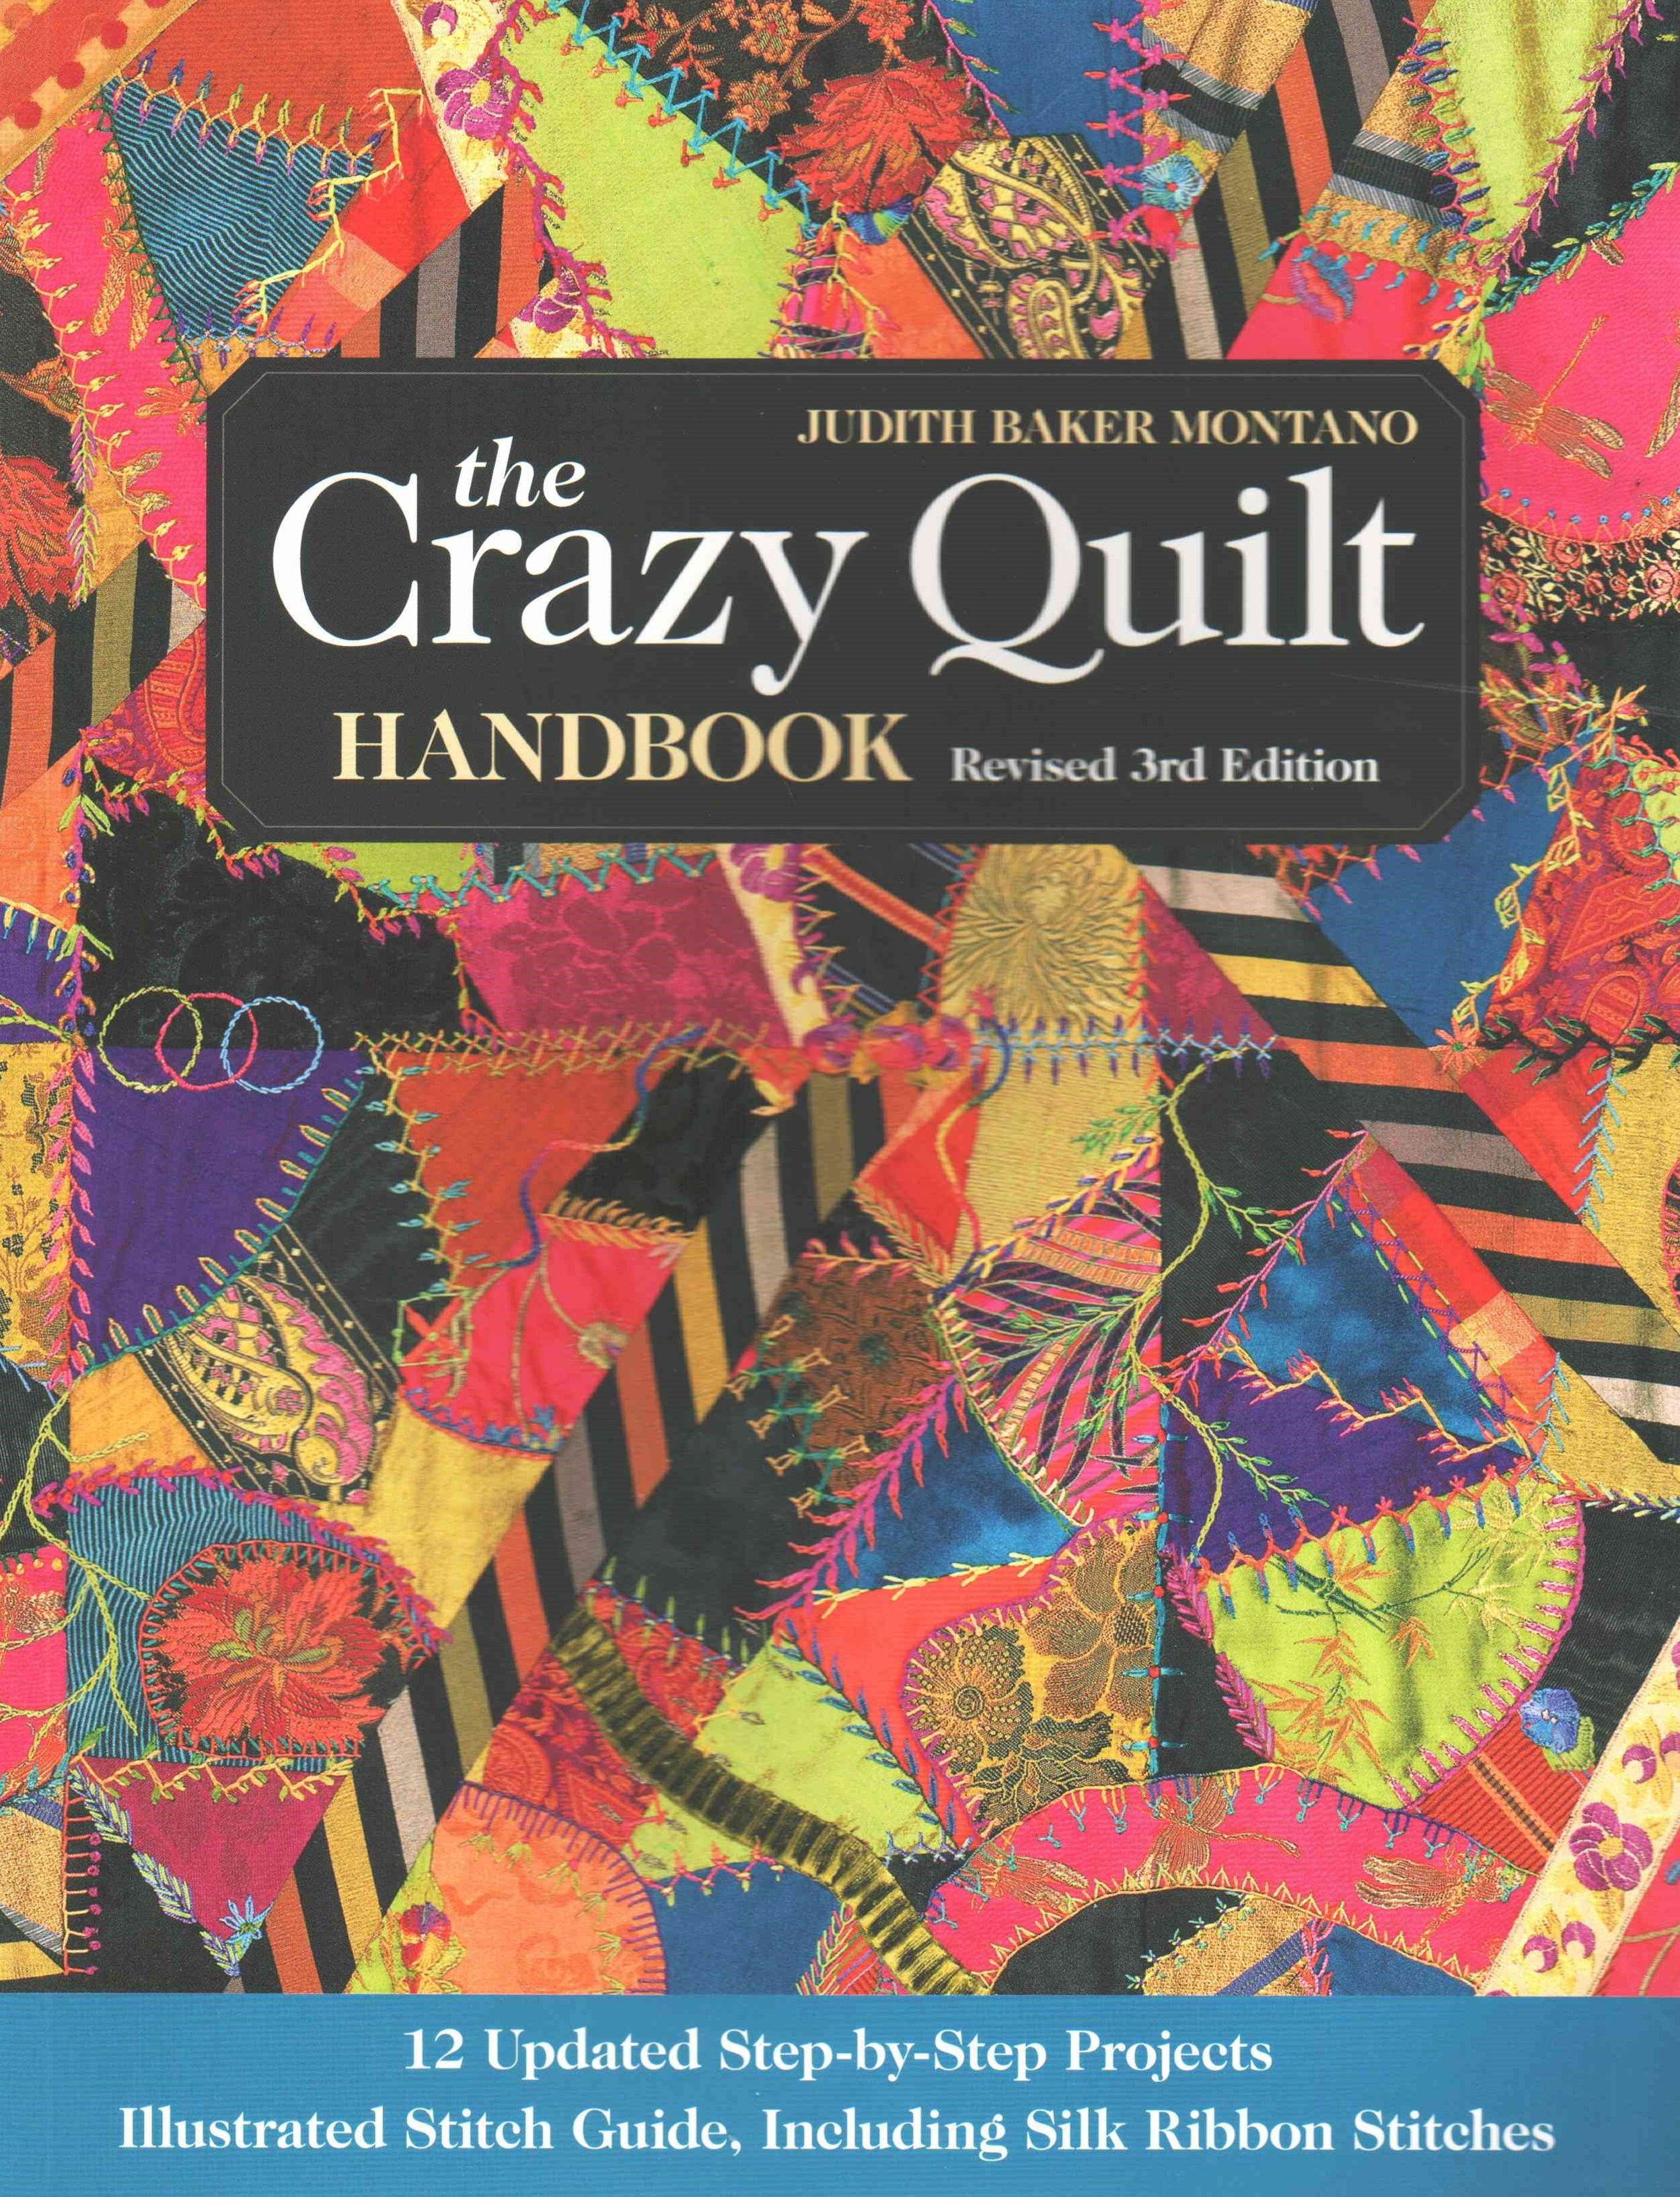 The Crazy Quilt Handbook, Revised